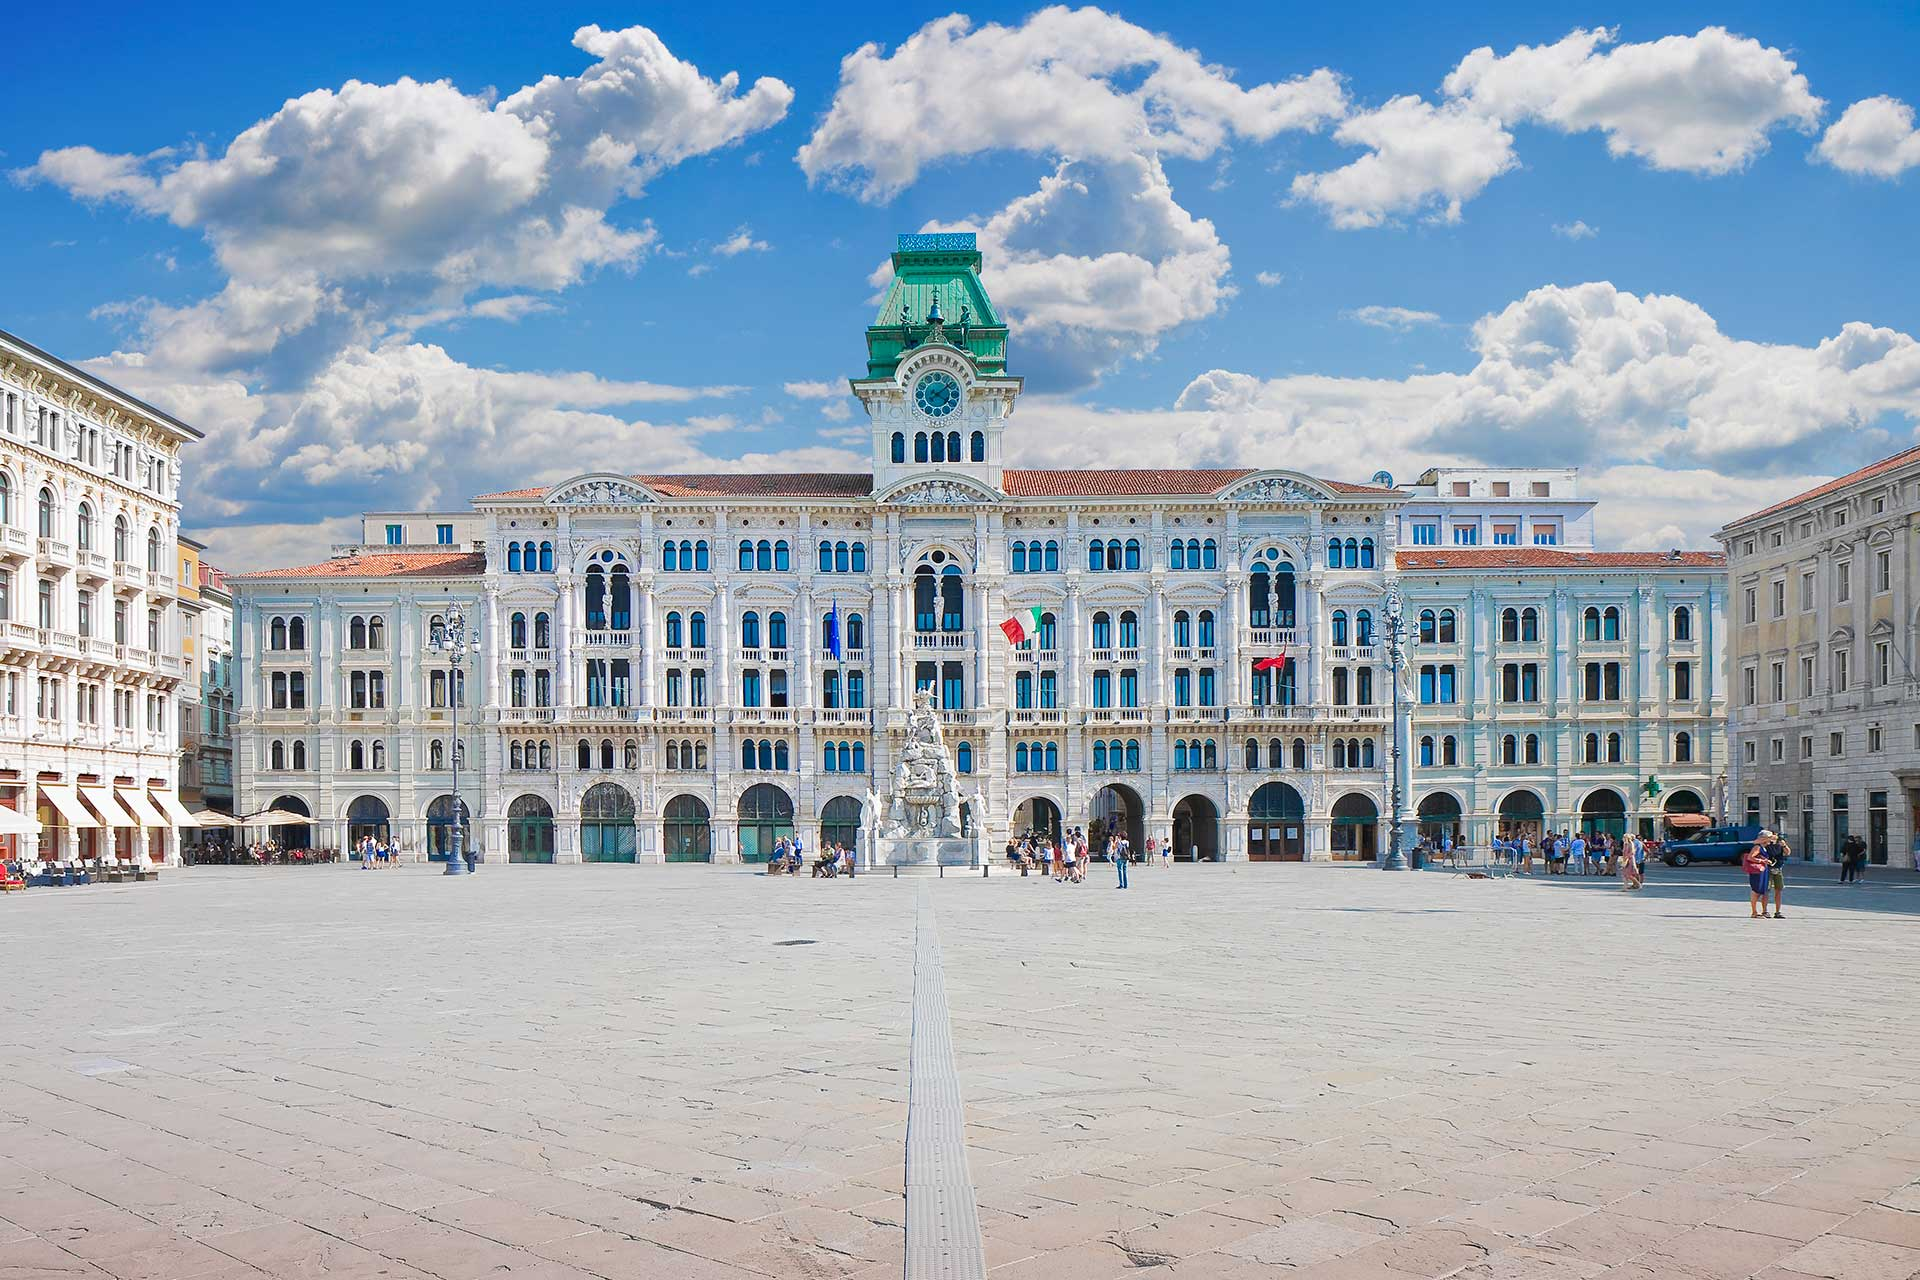 a large open Italian city square on a sunny day in Trieste surrounded by beautiful nineteenth century buildings